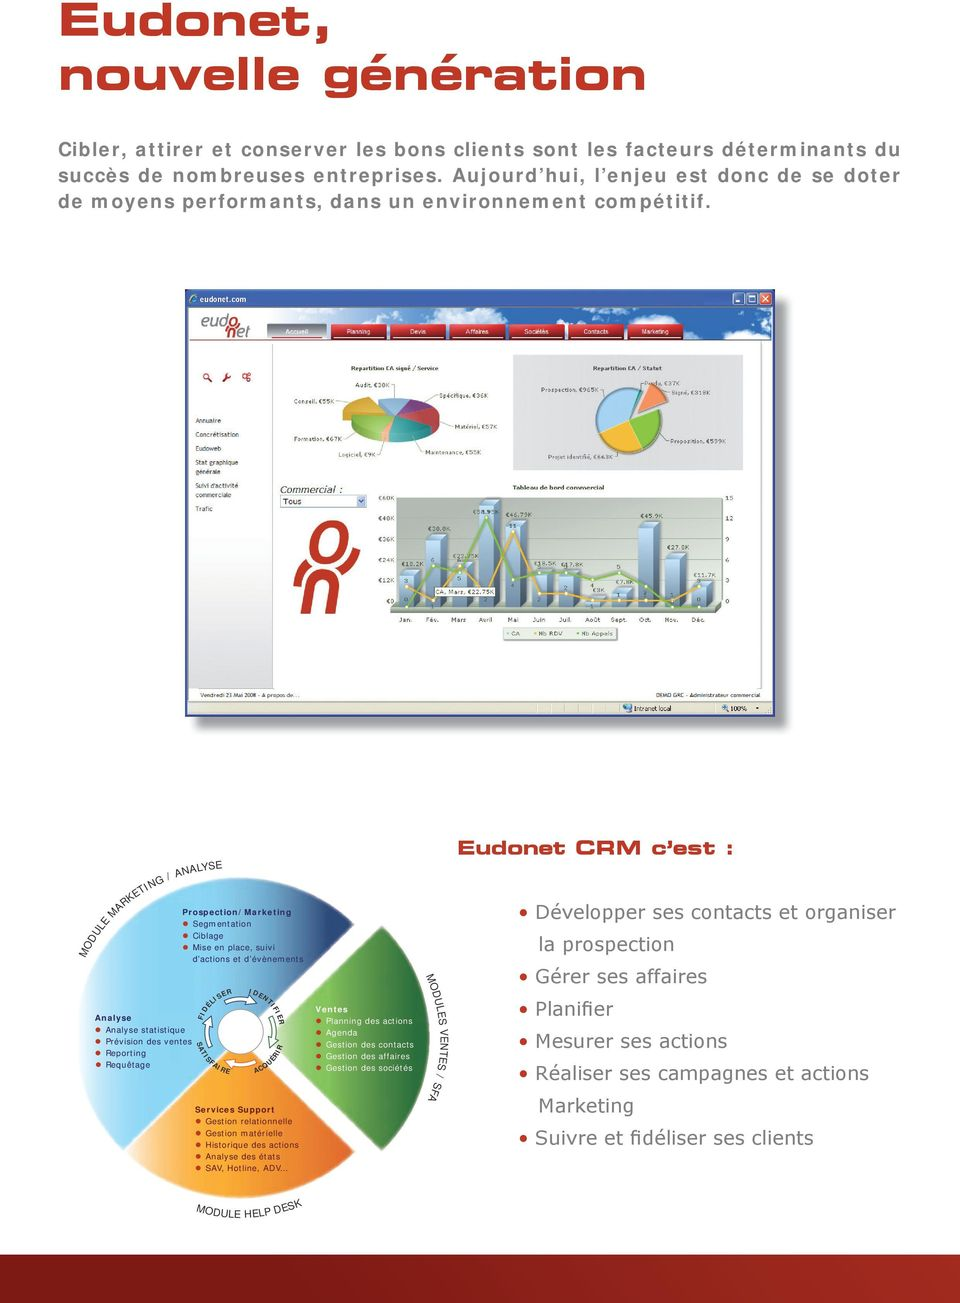 MODULE MARKETING / ANALYSE Analyse Analyse statistique Prévision des ventes Reporting Requêtage Prospection/Marketing Segmentation Ciblage Mise en place, suivi d actions et d évènements FIDÉLISER